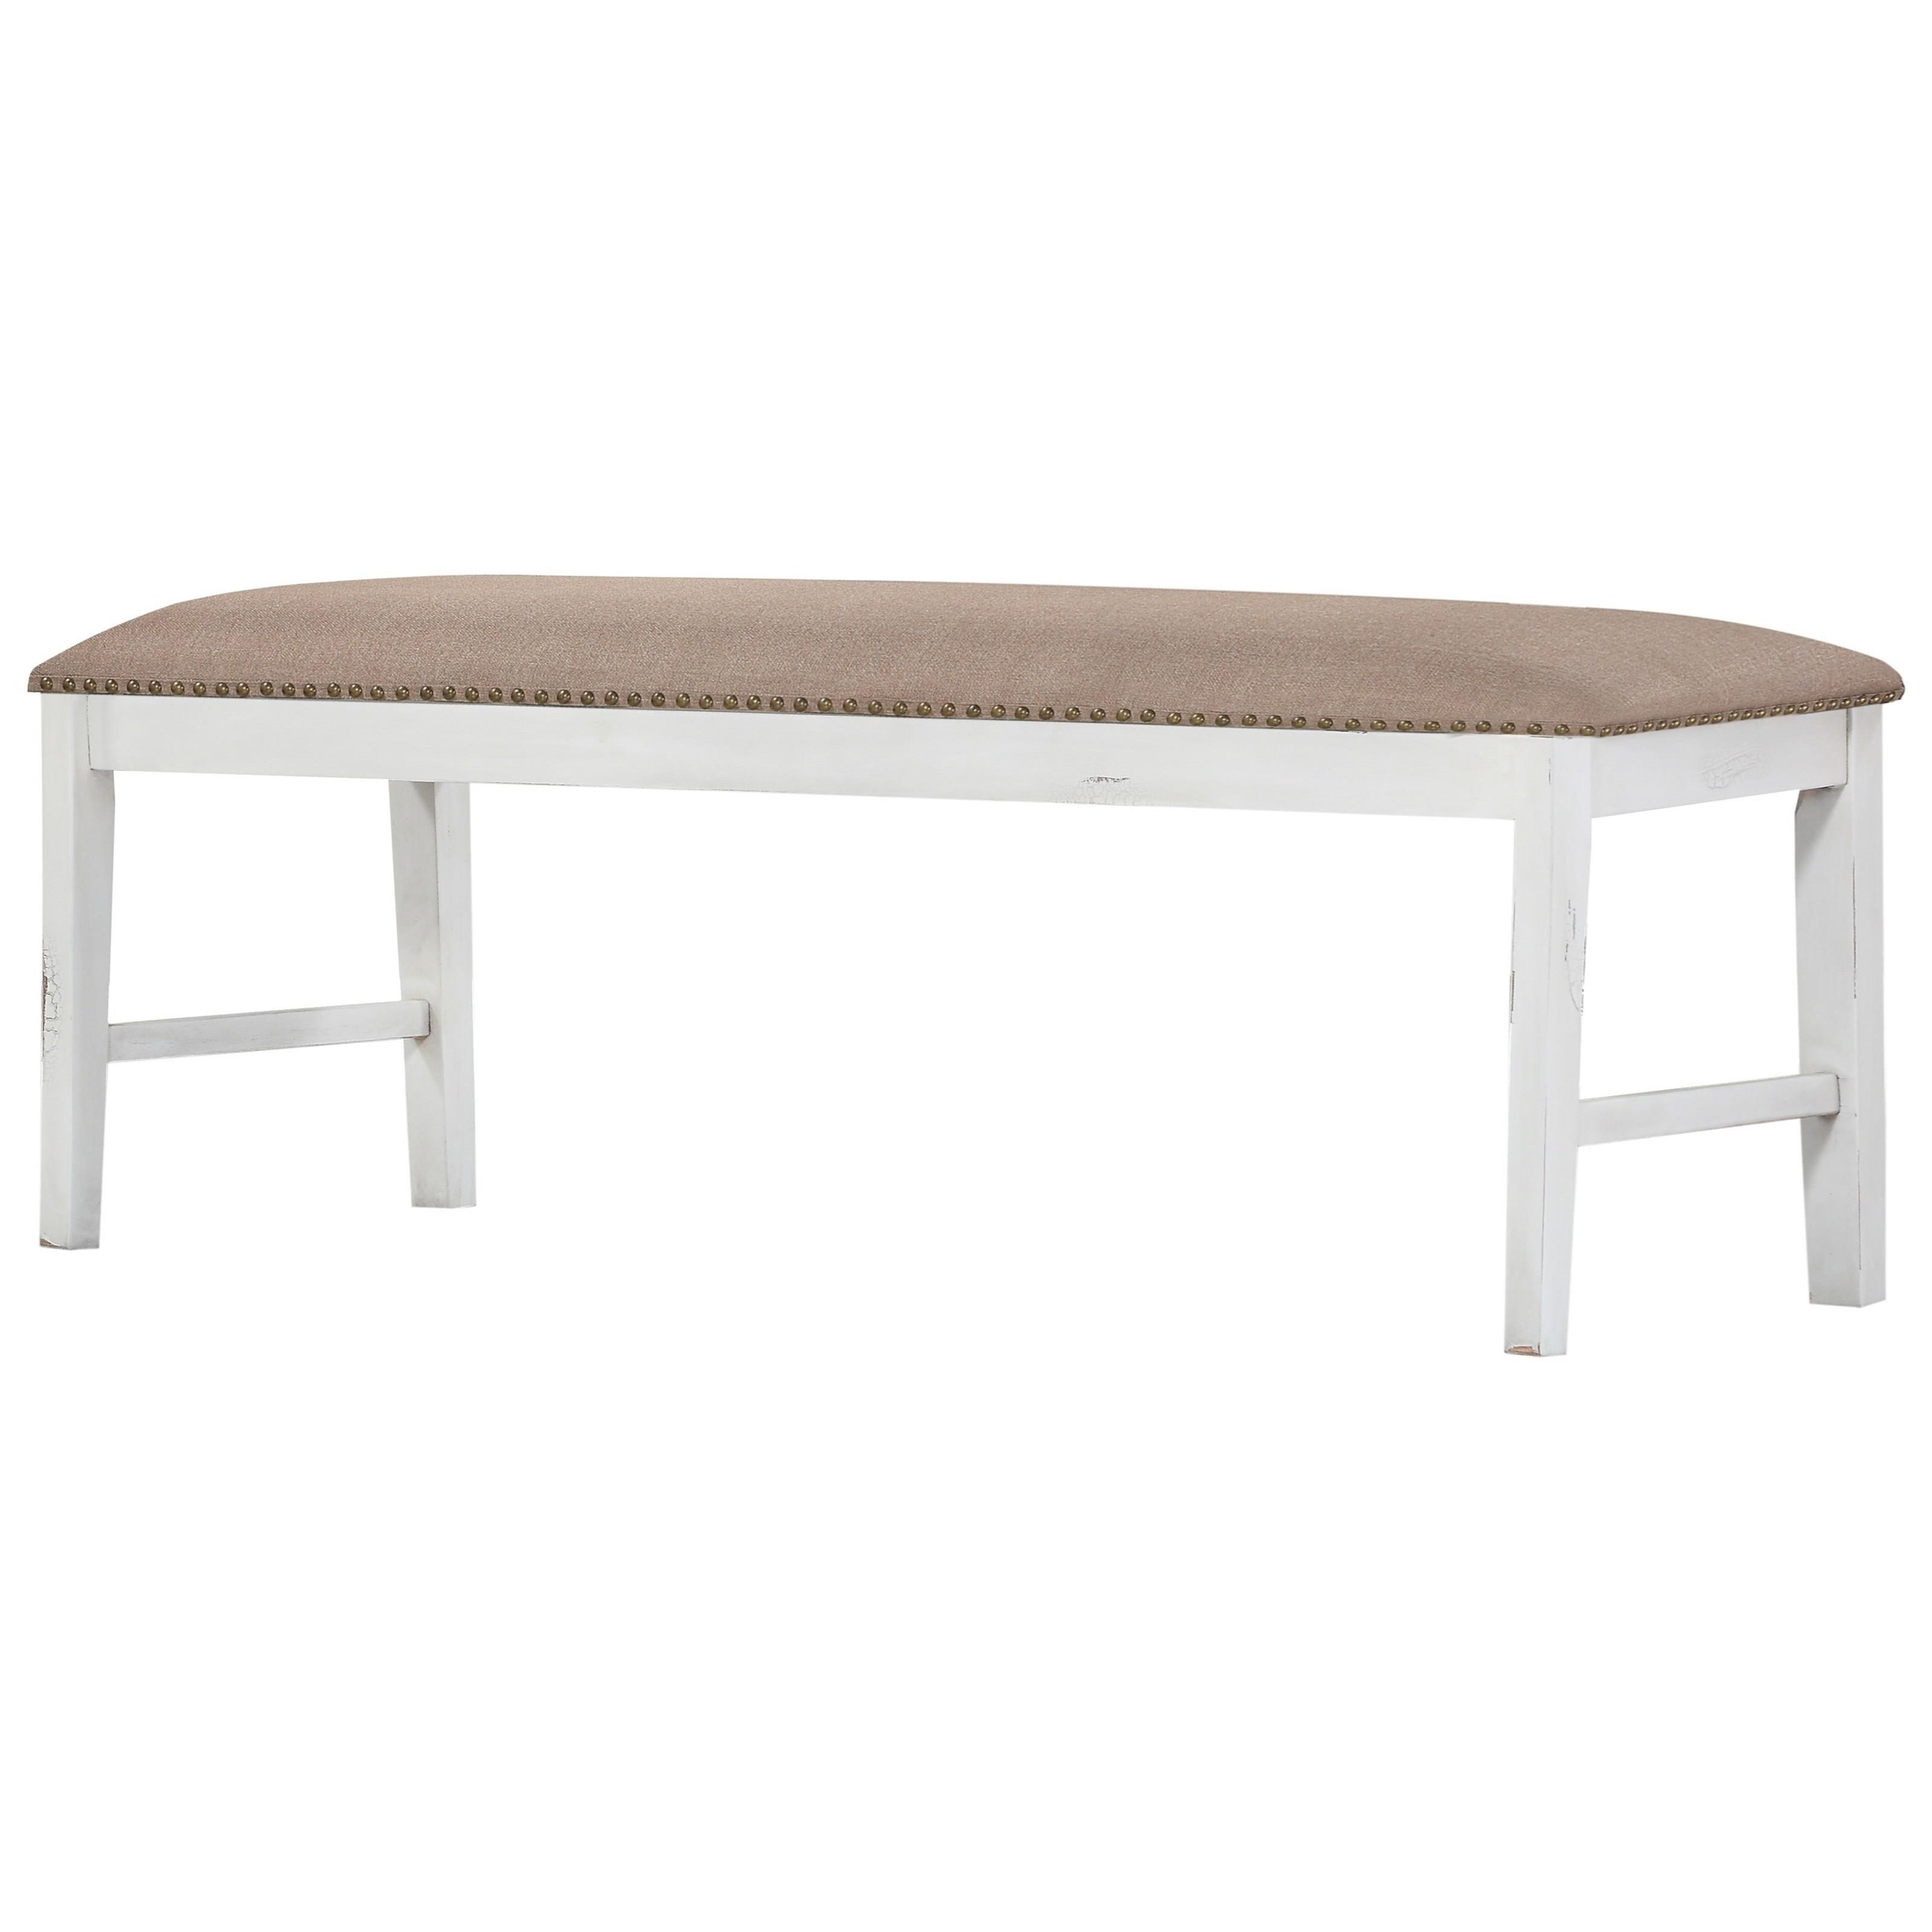 Abaco Upholstered Dining Bench by Emerald at Northeast Factory Direct